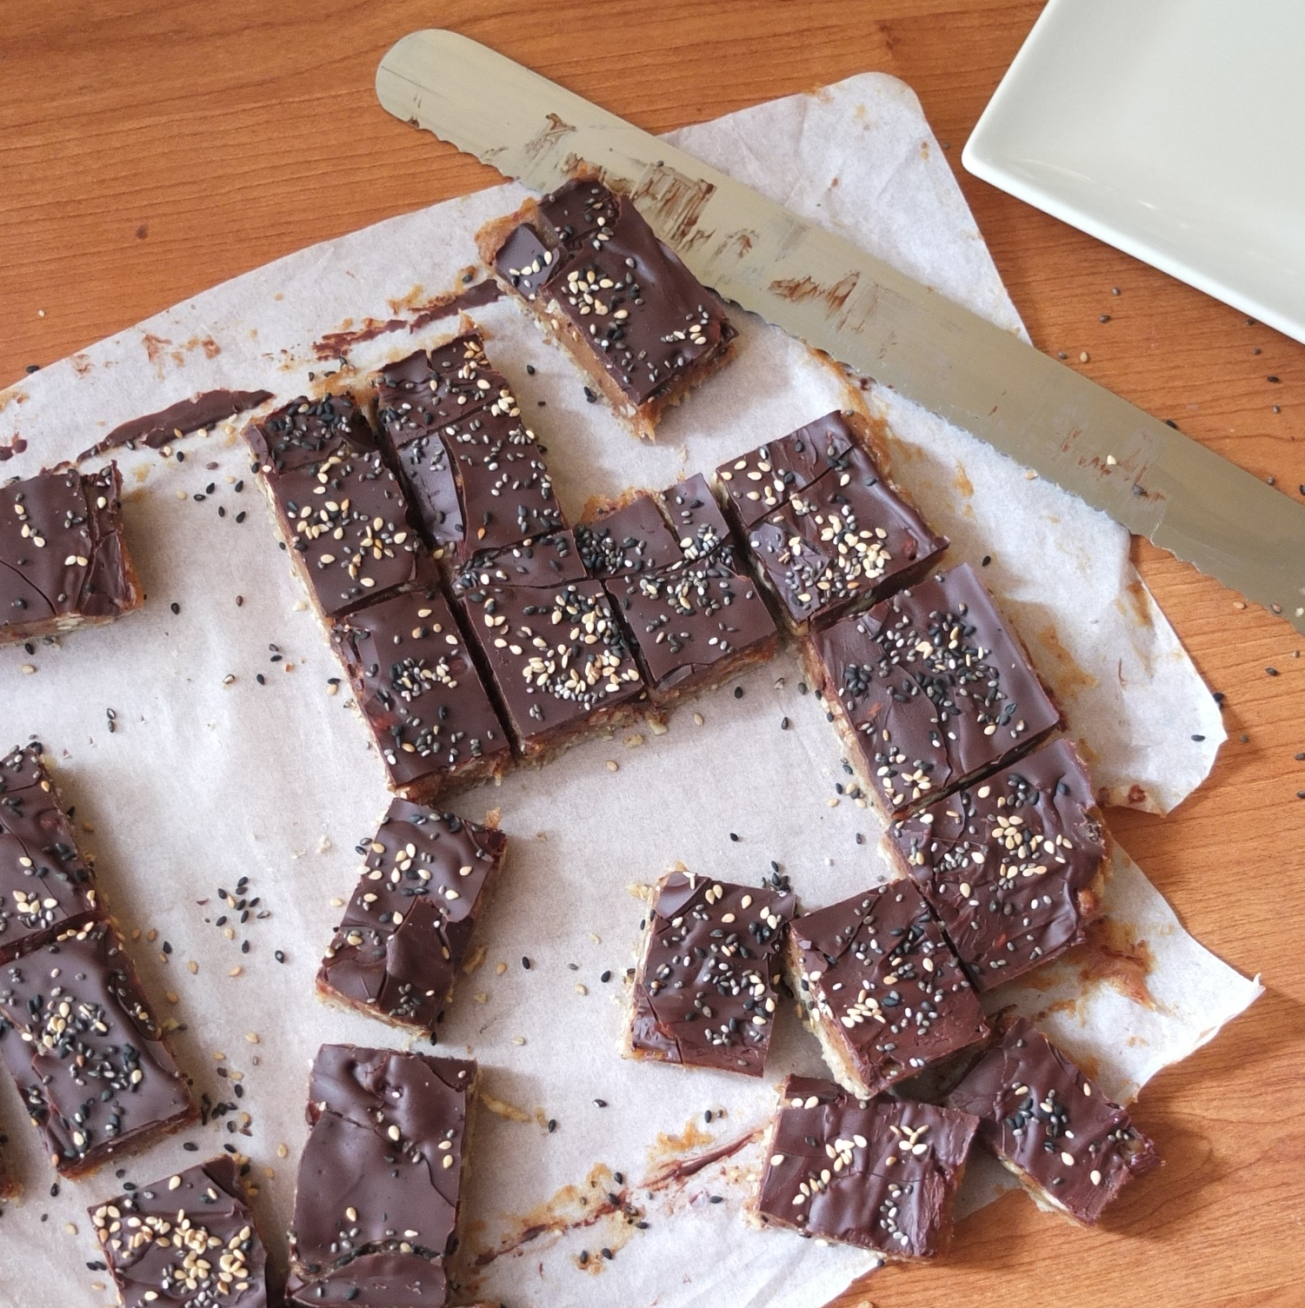 Healthy chocolate and nut caramel slices